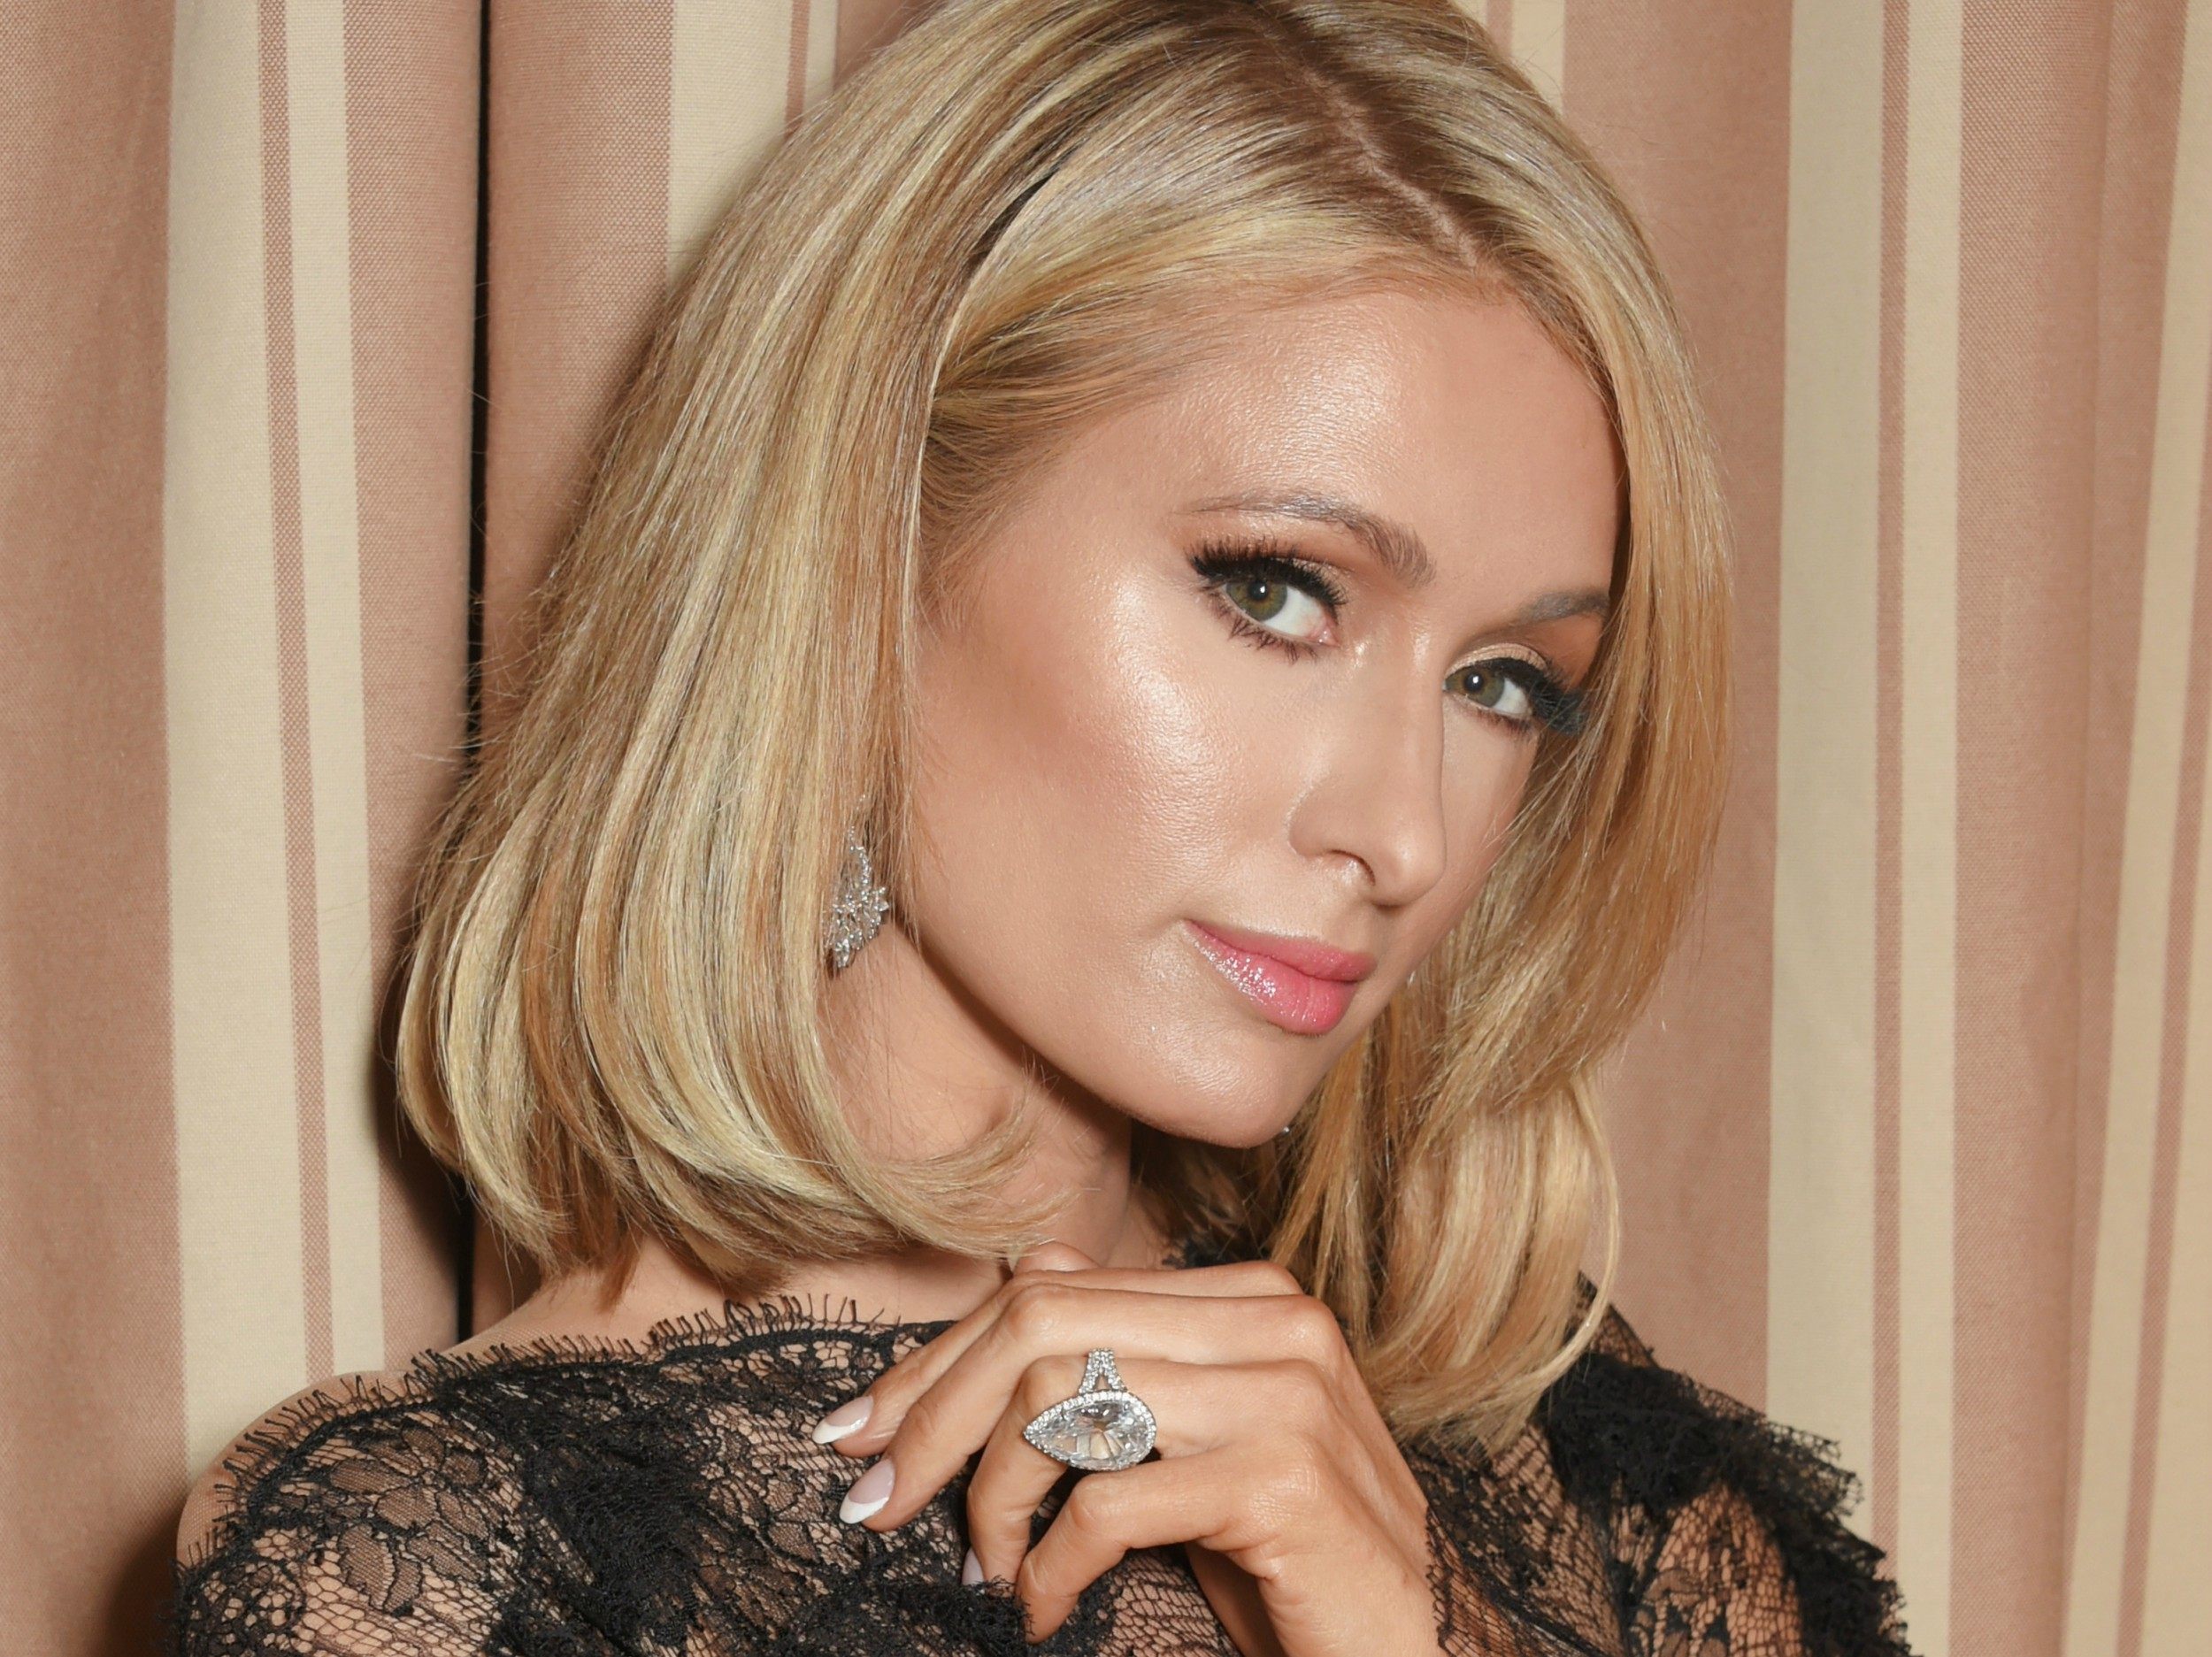 Paris Hilton Reportedly Lost Her $2 Million Engagement Ring in a Nightclub